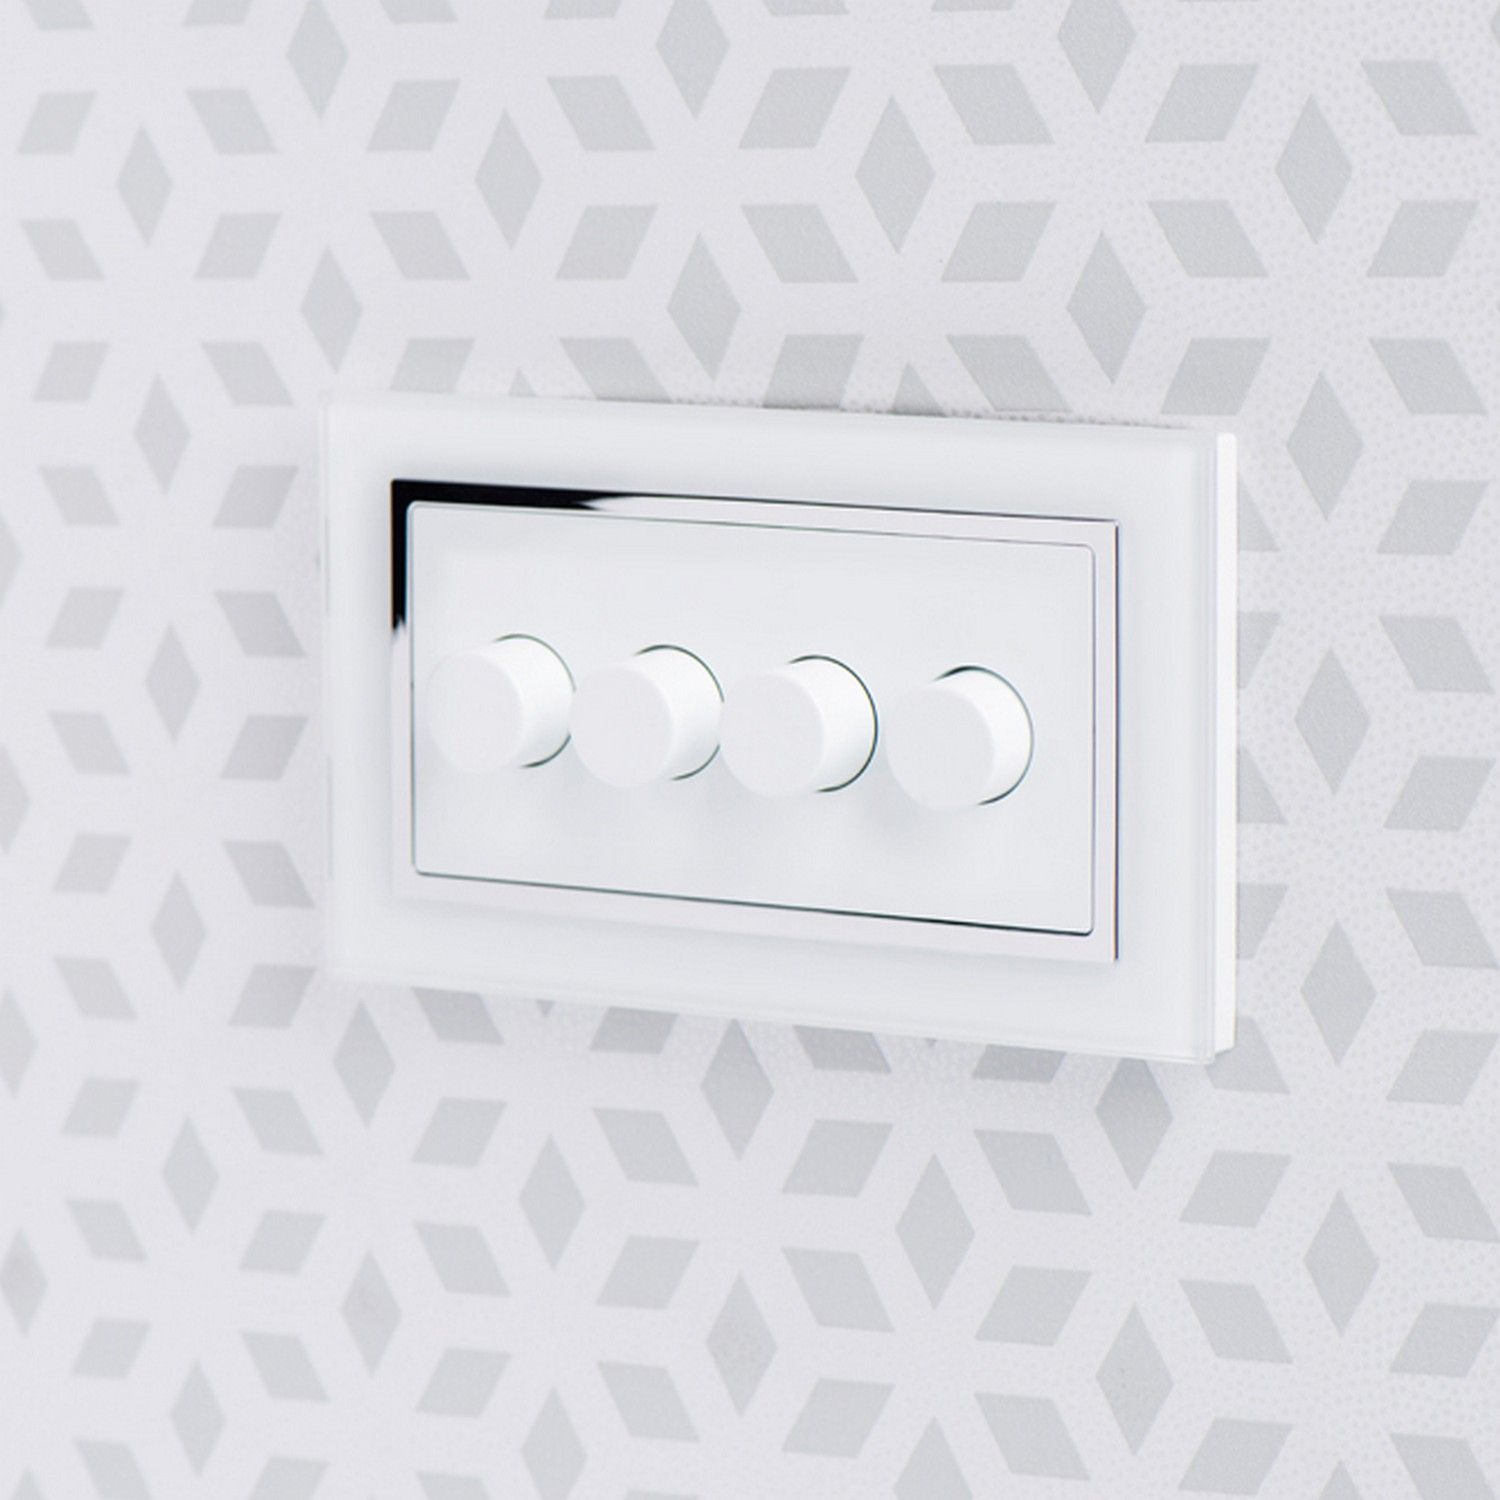 retrotouch 4 gang 2 way dimmer switch 3 200w led halogen white gl ct 02100